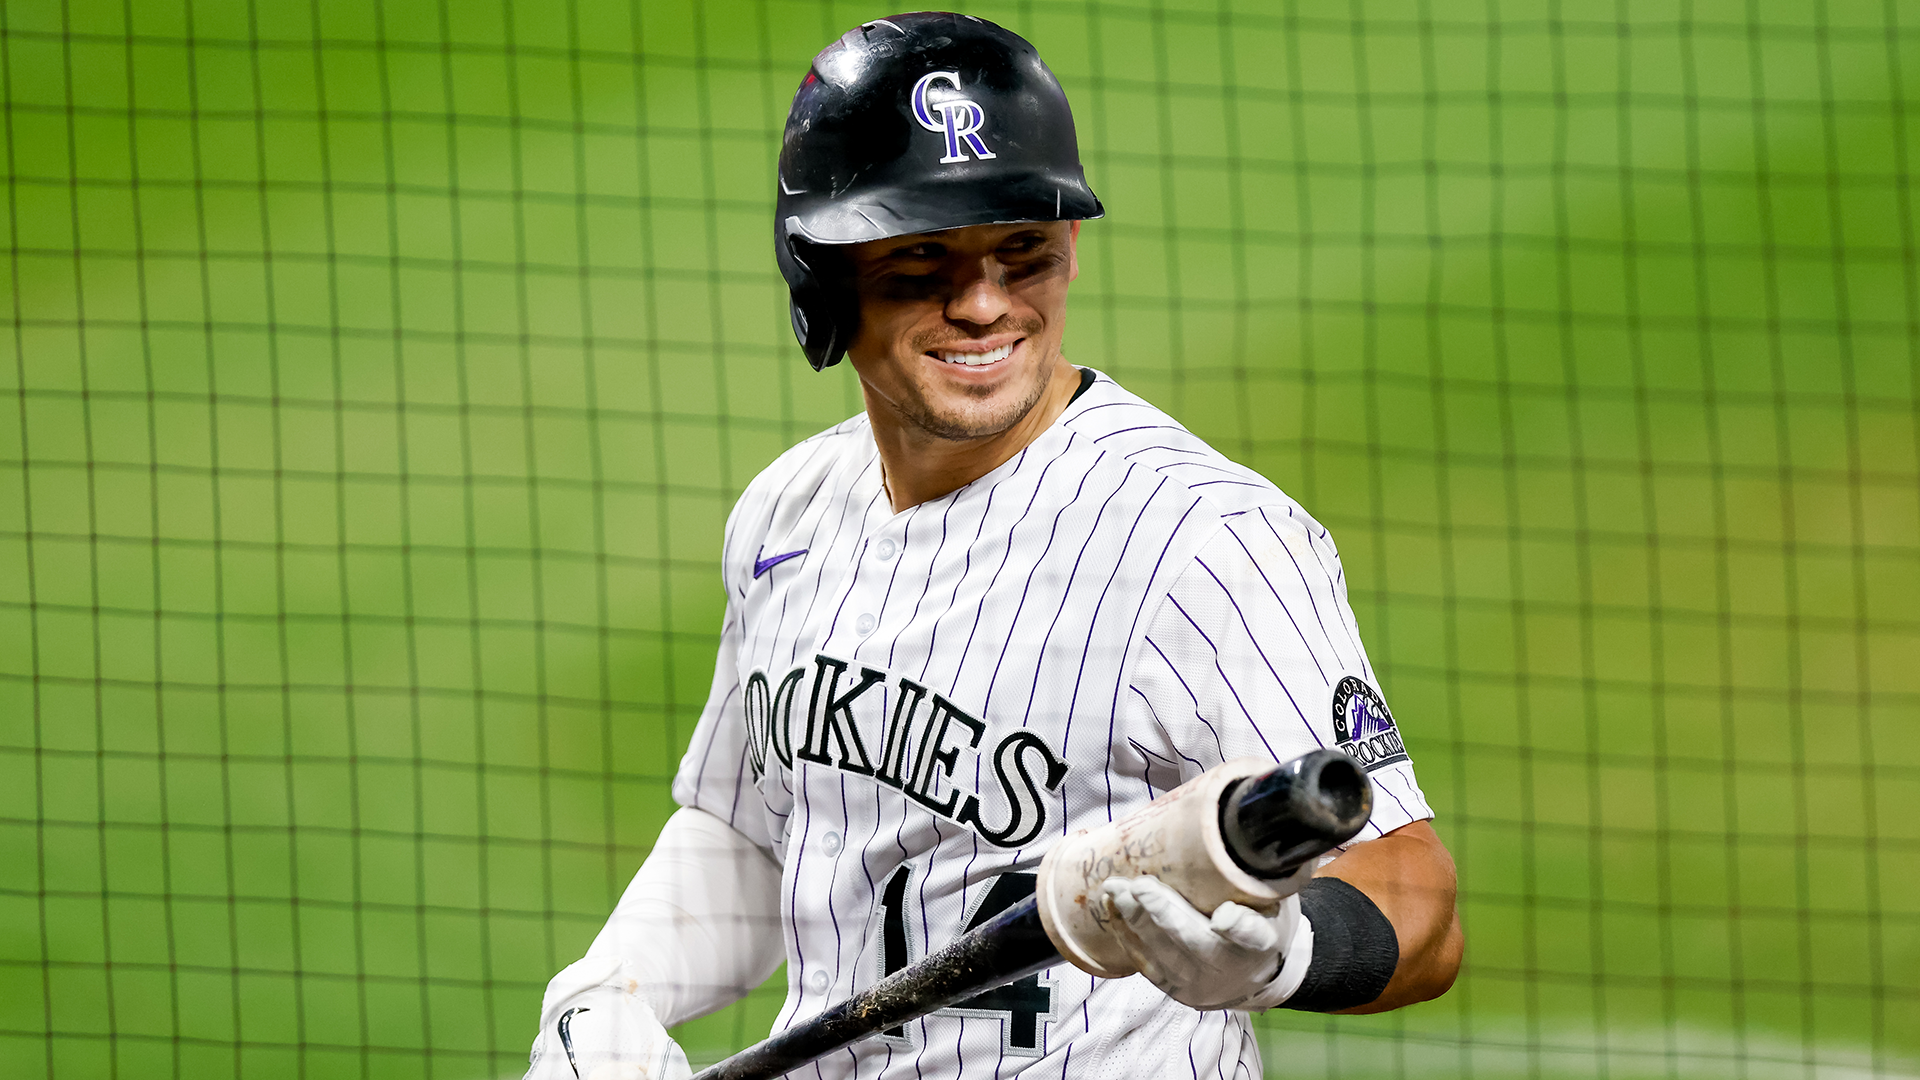 Tony Wolters had one of the saddest strikeouts you'll ever see